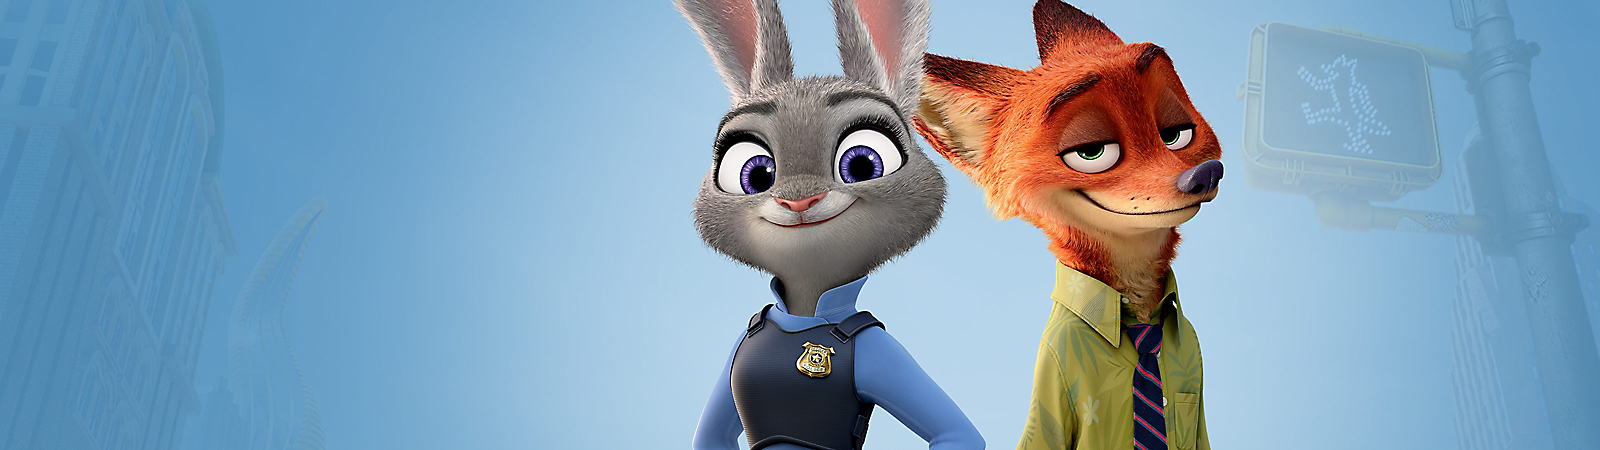 Background image of Zootopia